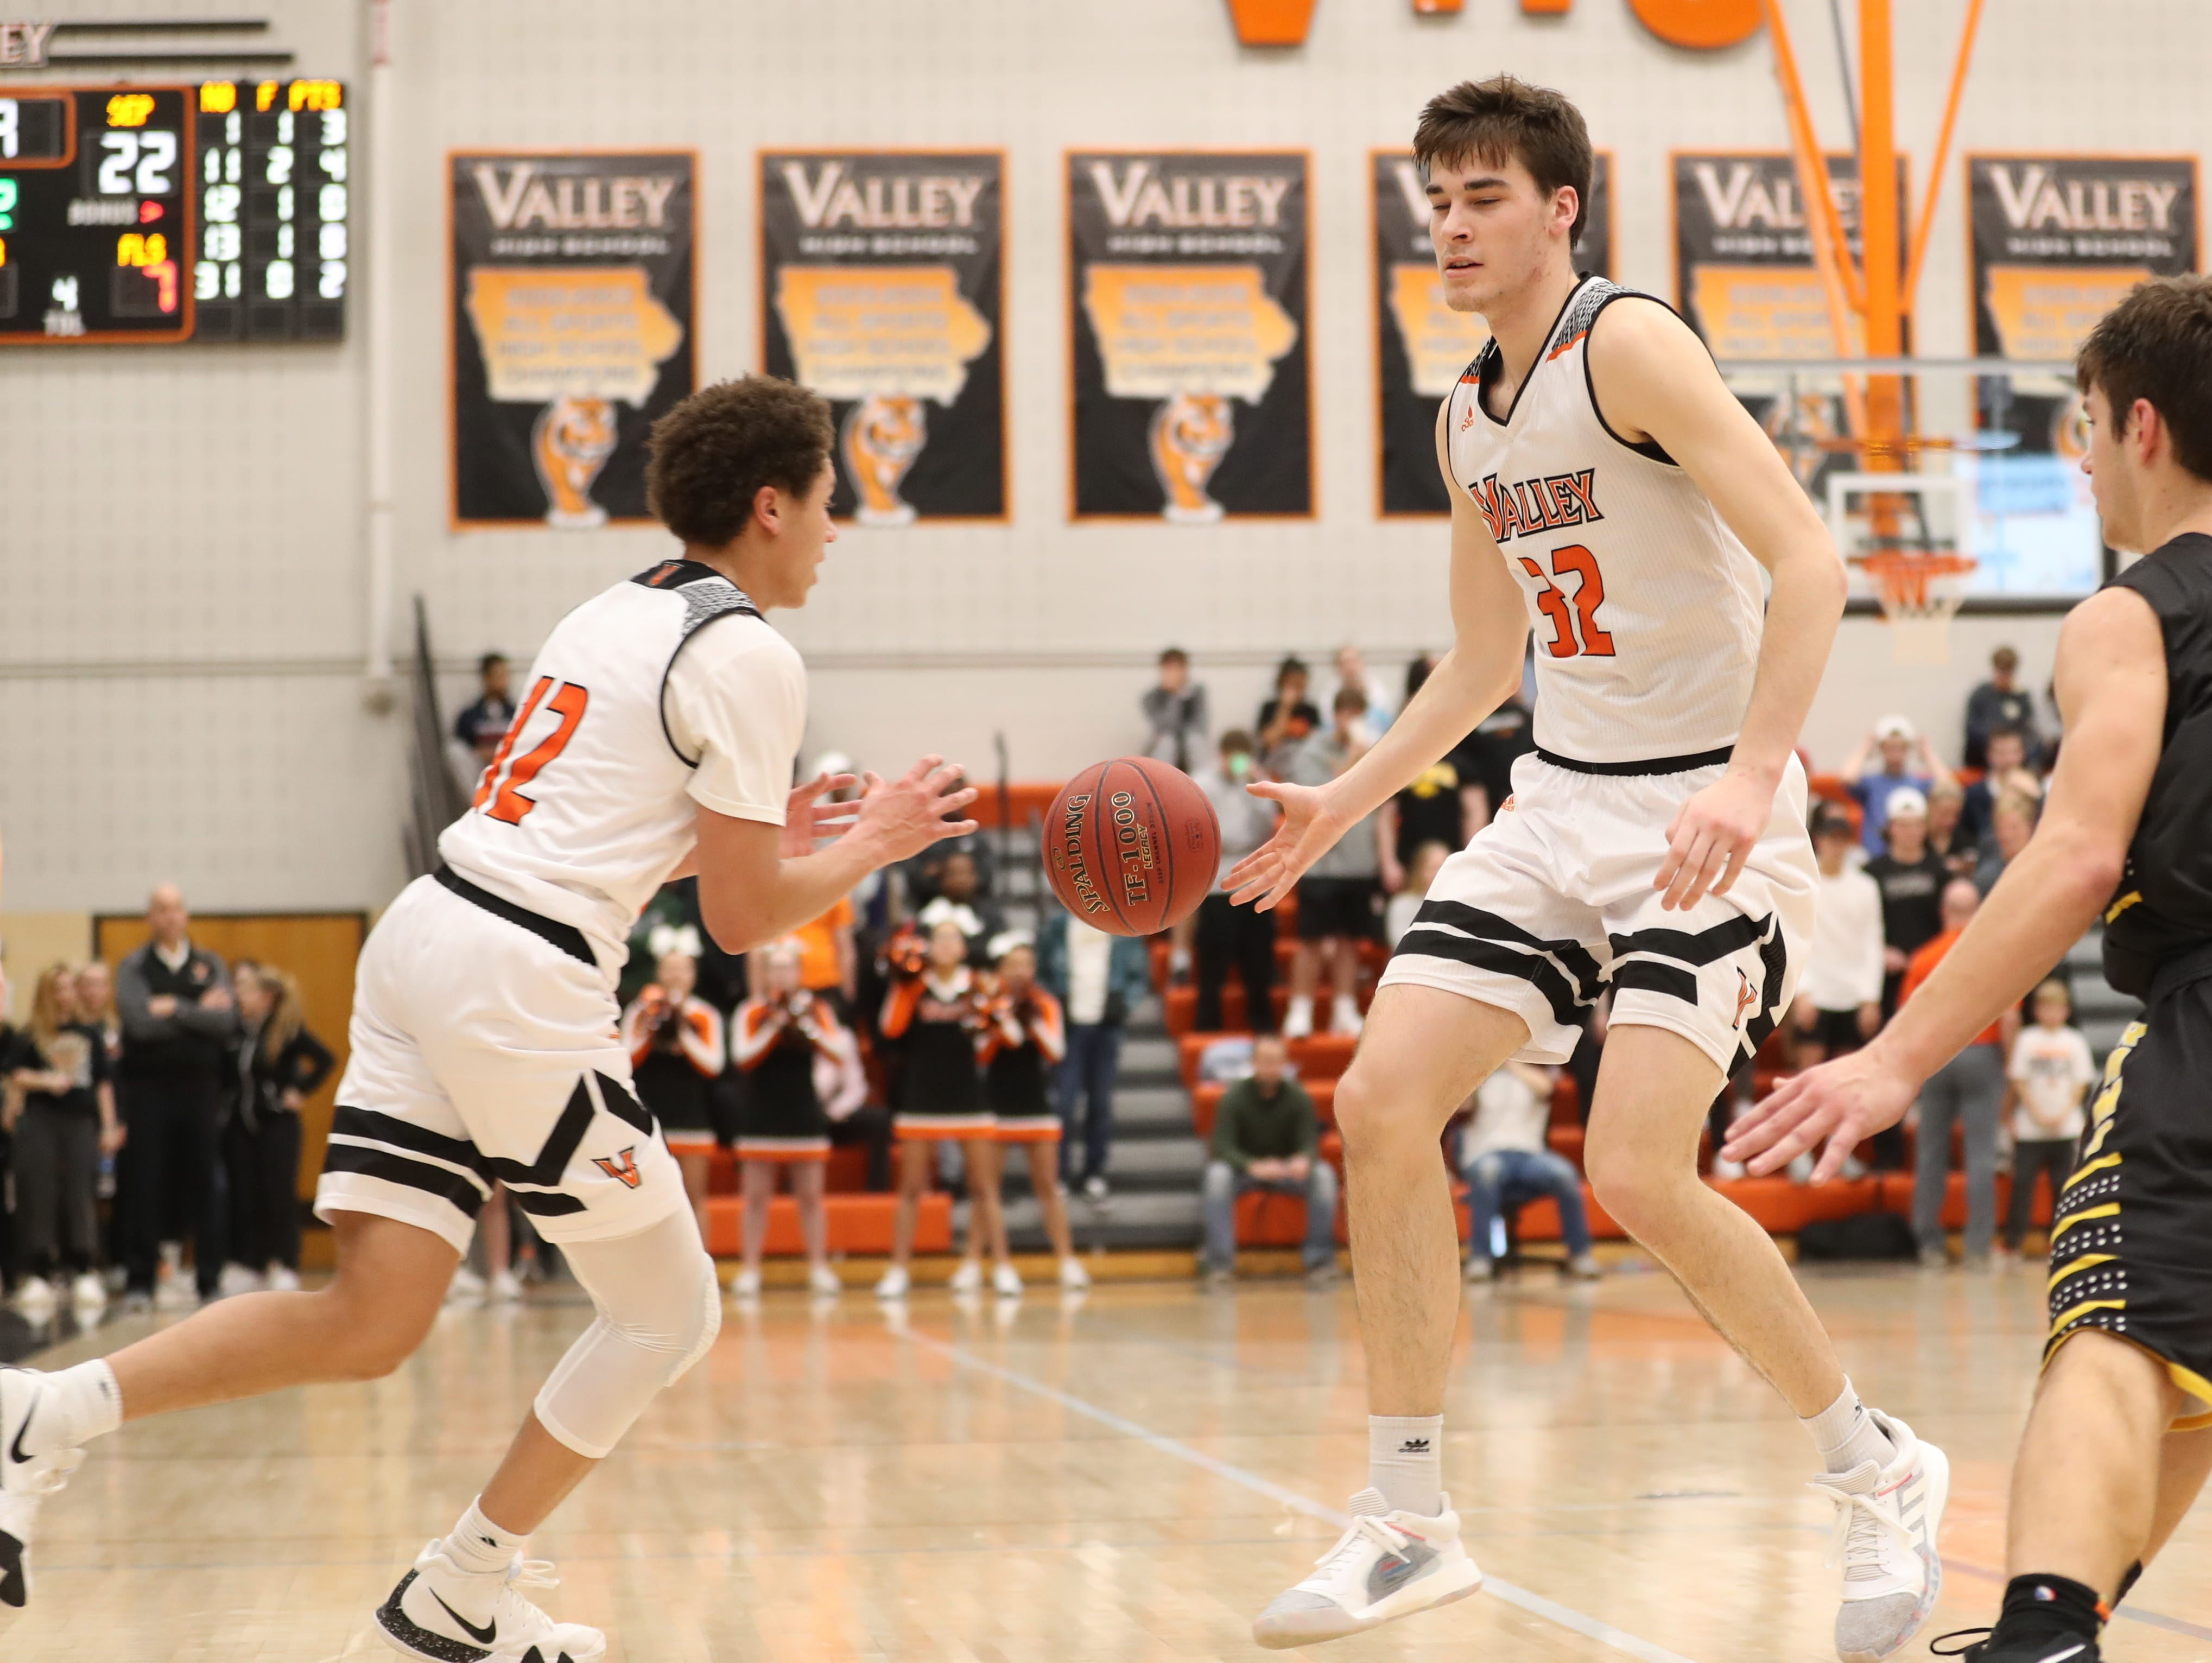 Valley Tigers' Will Berg (32) passes to  Evan Obia (12) during a boys basketball game at Valley High School on Jan. 11, 2019. Valley won, 61-54.